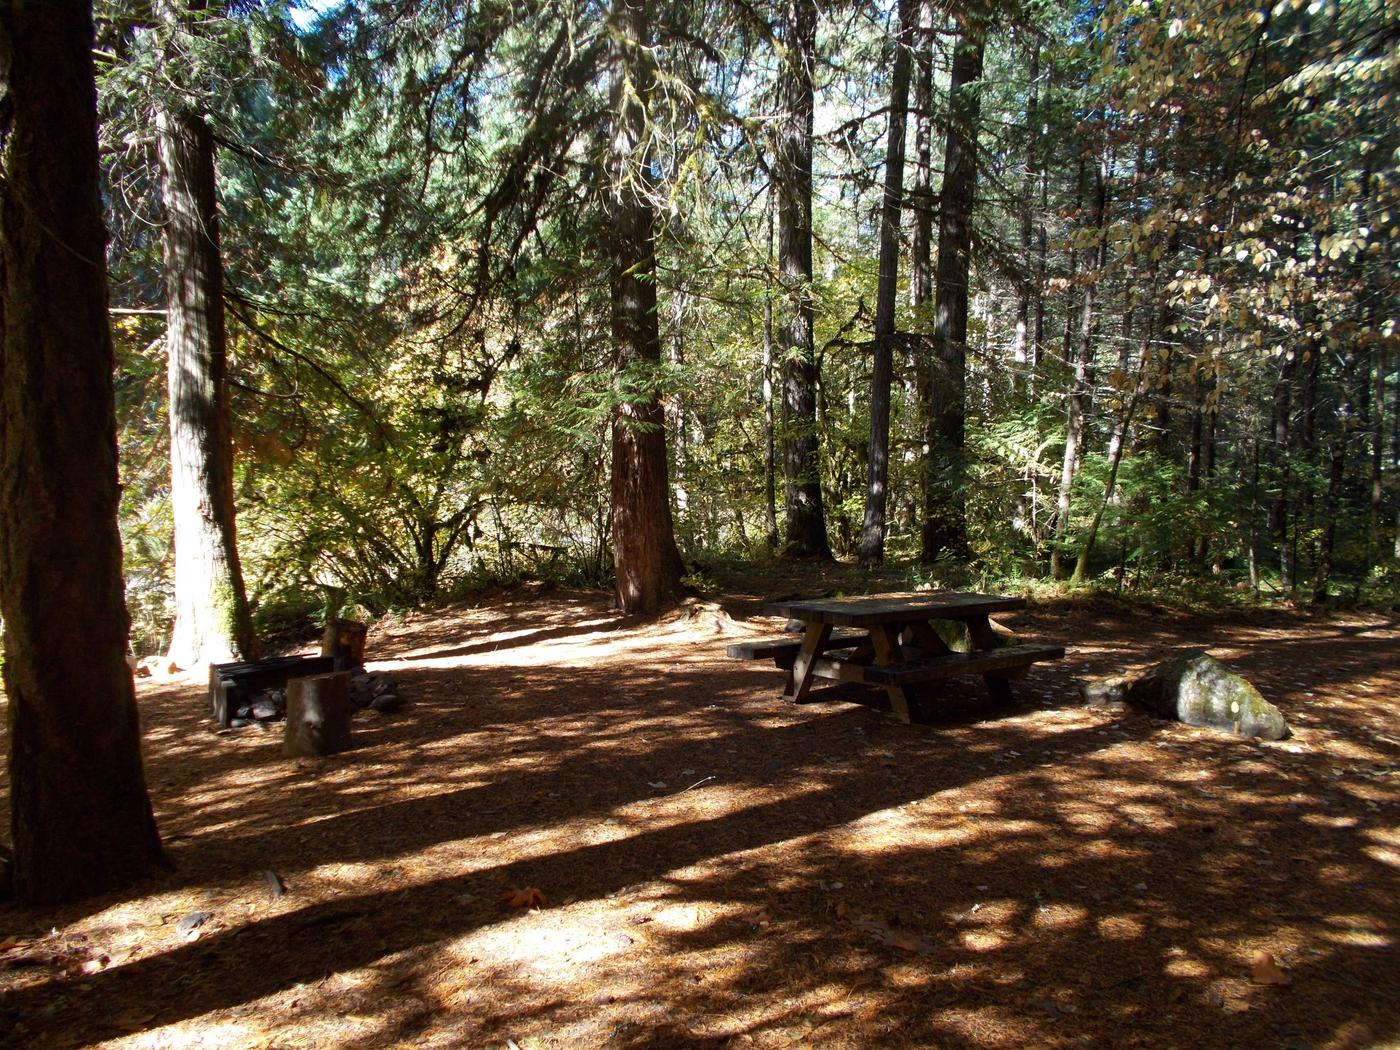 Flat campsite with one picnic table and fire ring.016